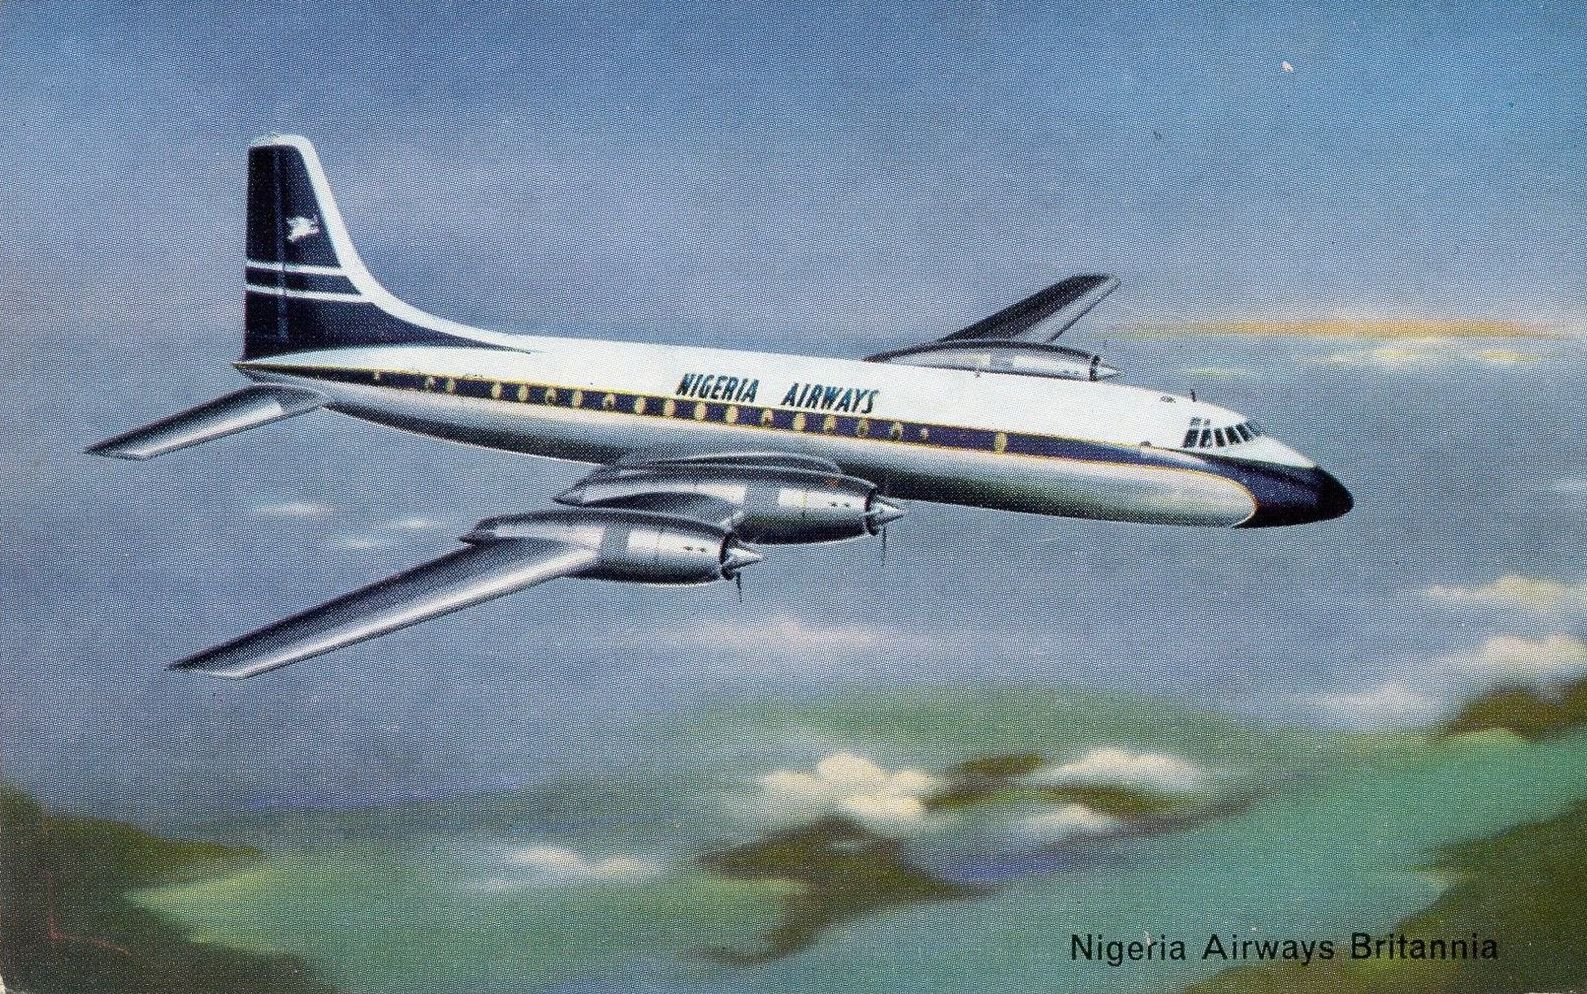 Nigeria Airways Britannia Airline issue postcard